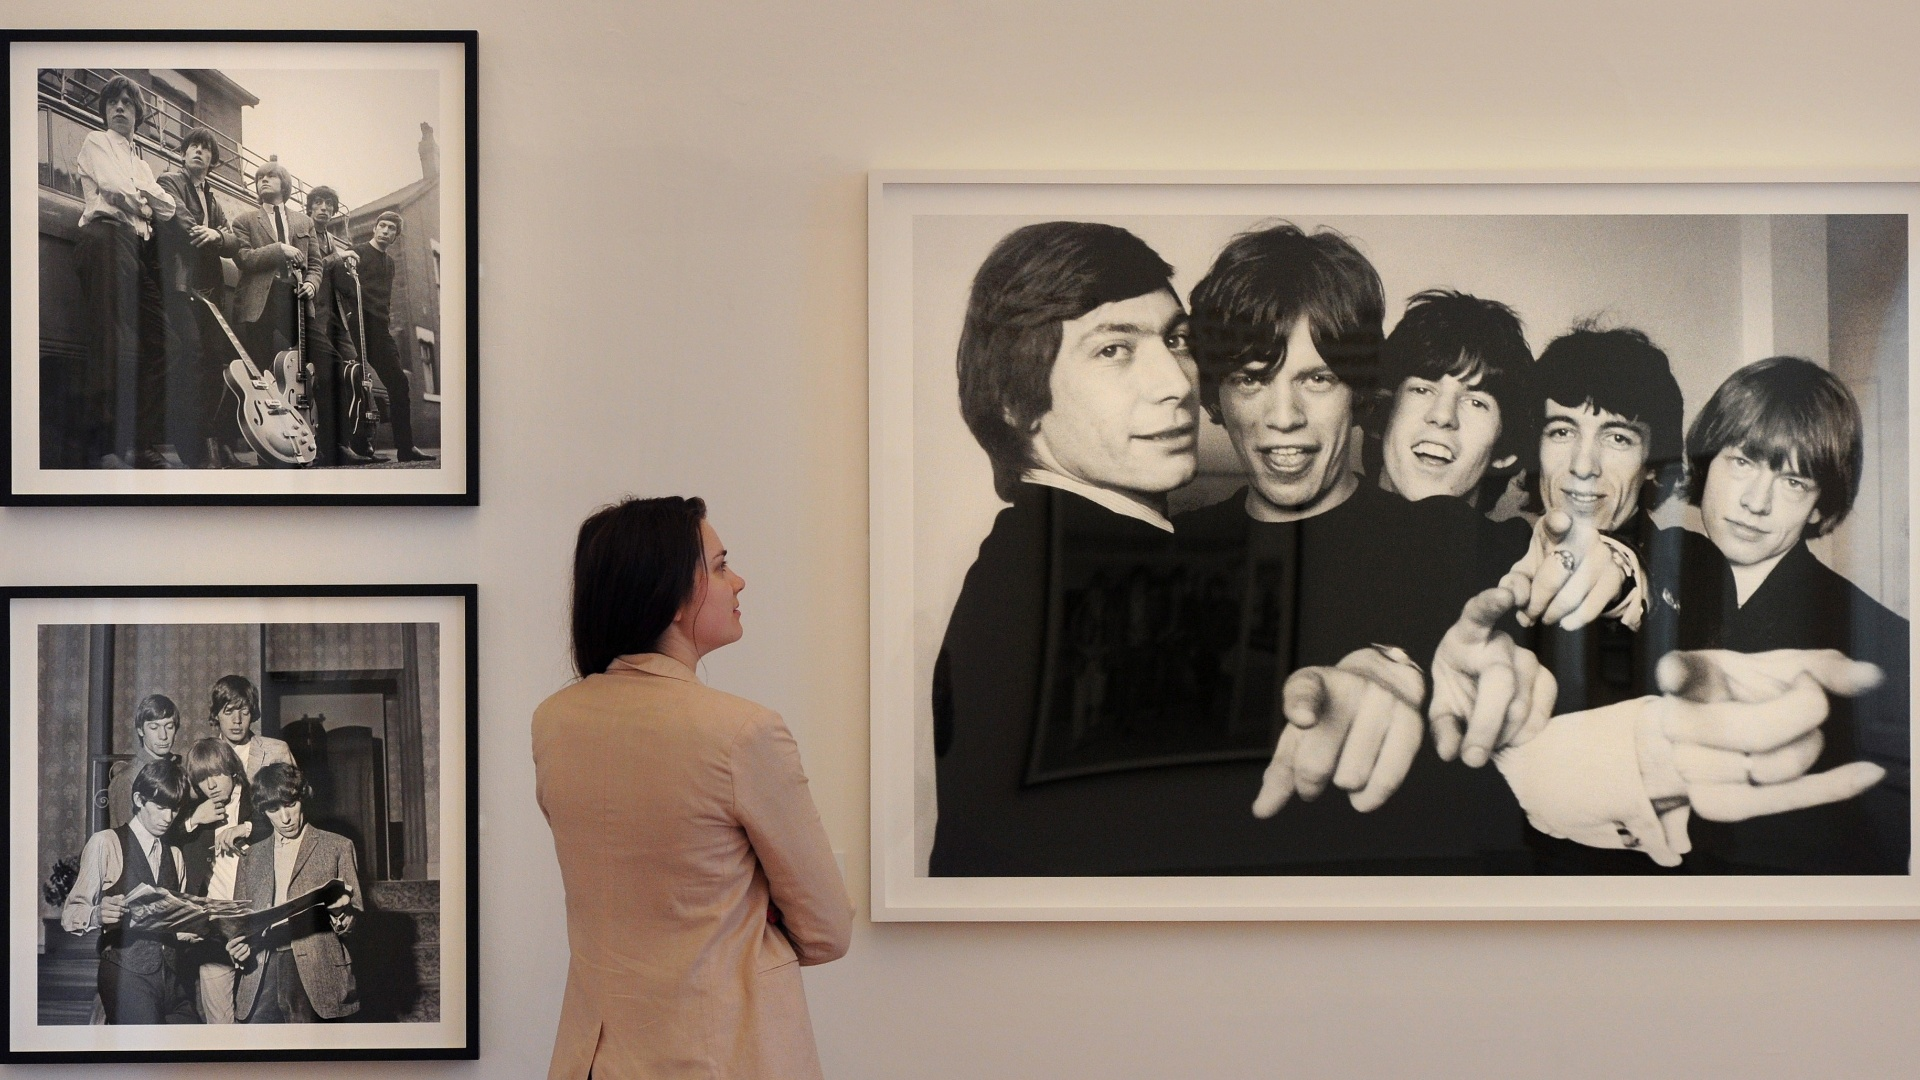 Mulher observa foto dos Rolling Stones na exposio 